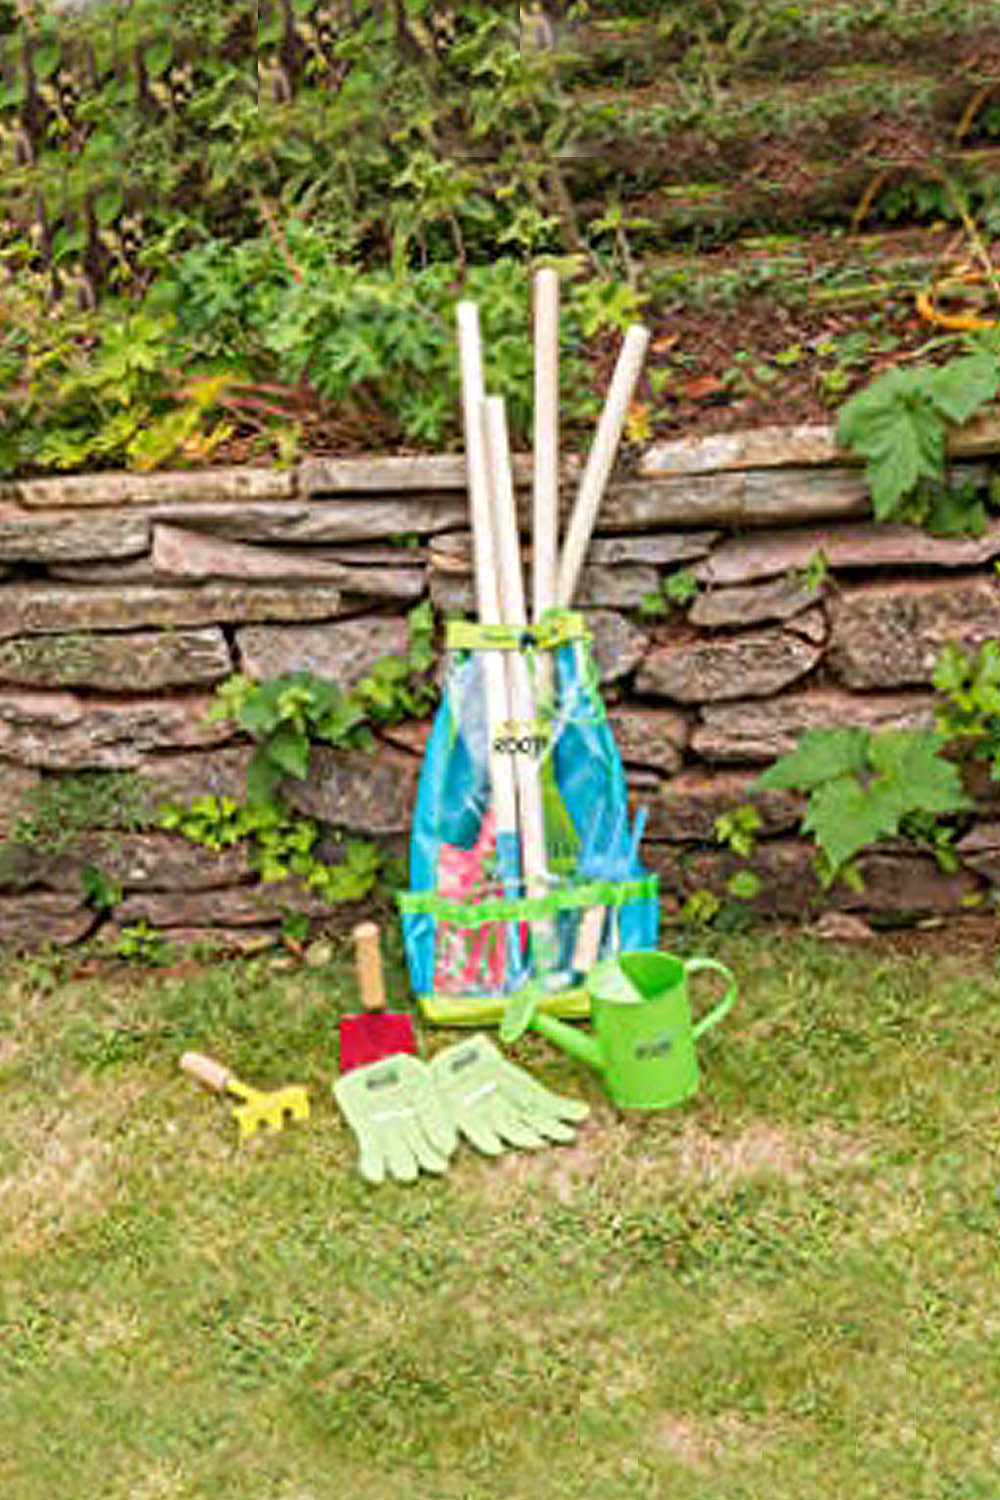 Little-Roots-Kids-Wheelbarrow-Or-Gardening-Kits-Garden-Tools-Outdoor-Activity thumbnail 9